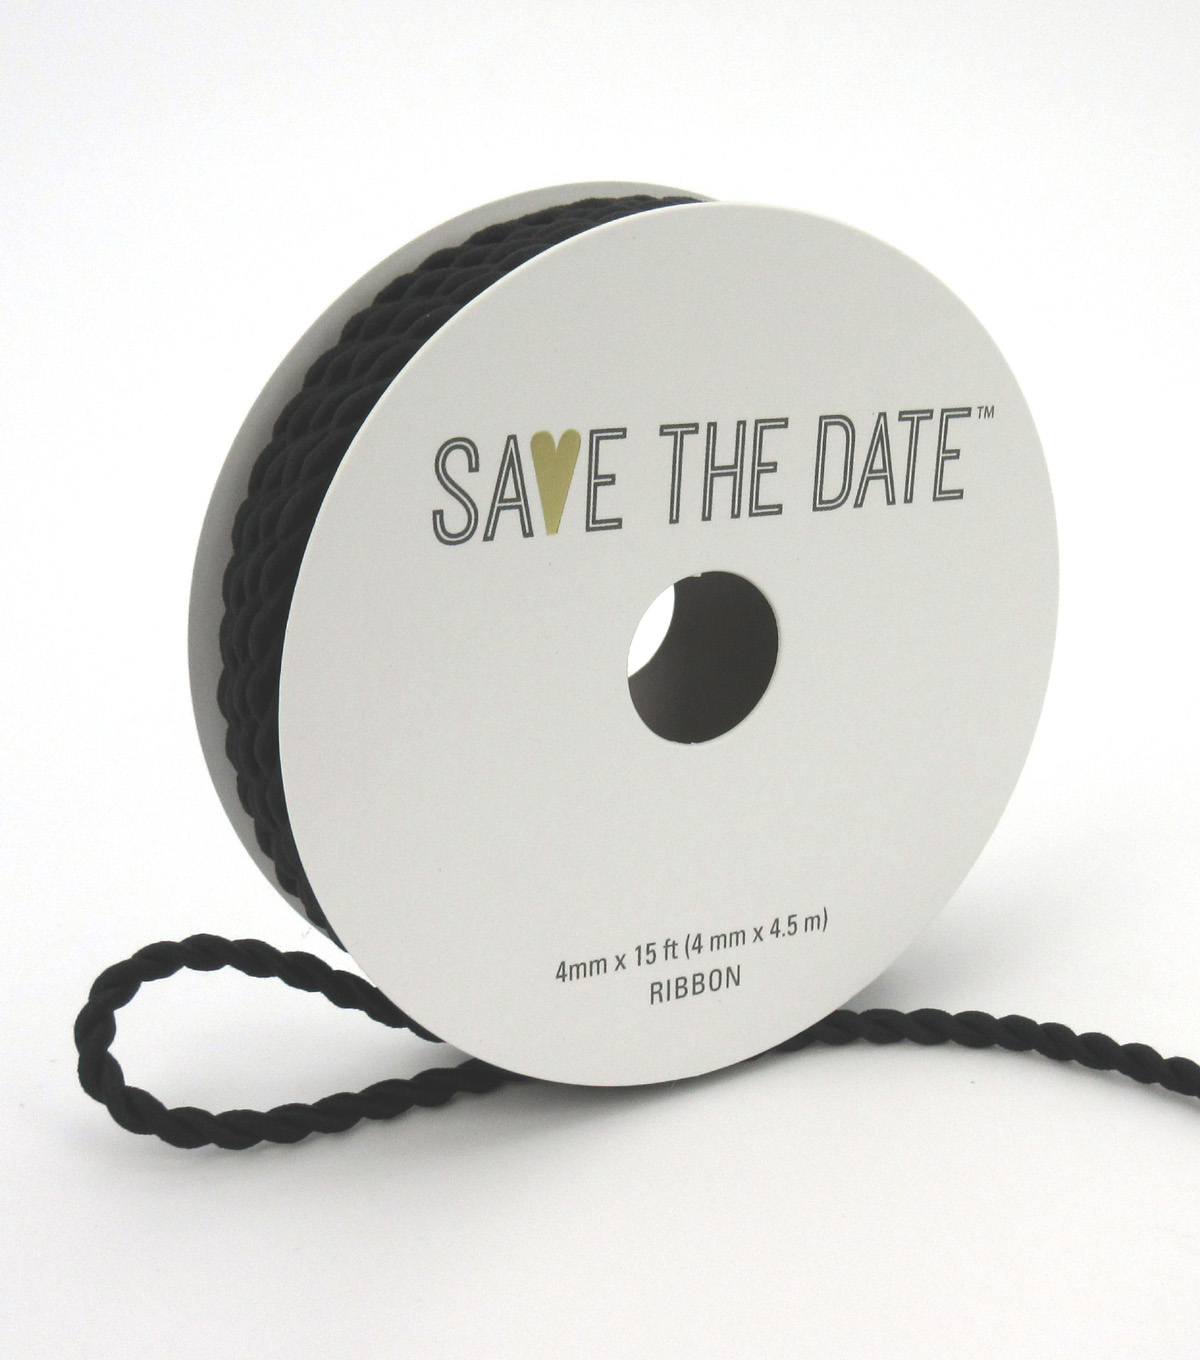 Save the Date 4mm x 15ft Cord-Black